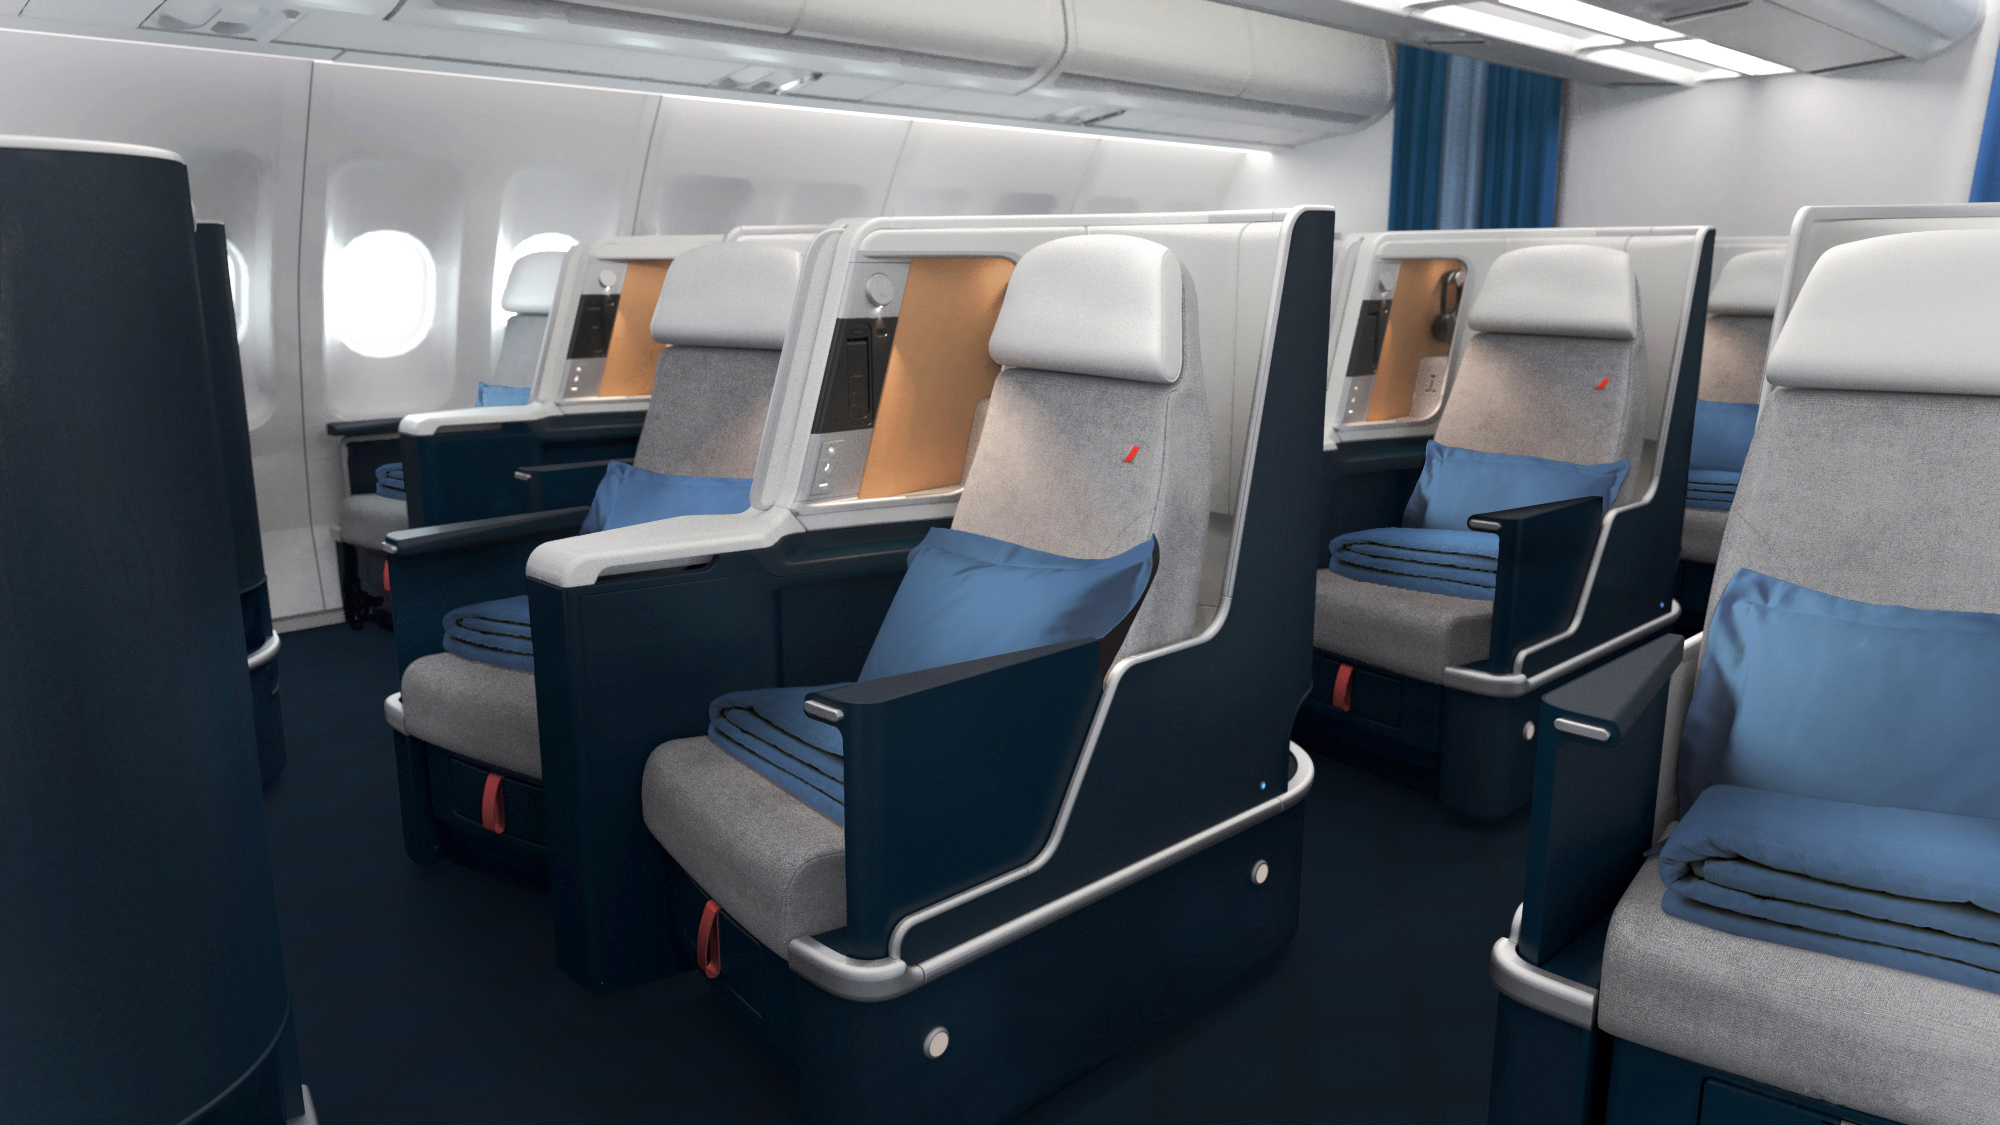 Air France A330 business class seat